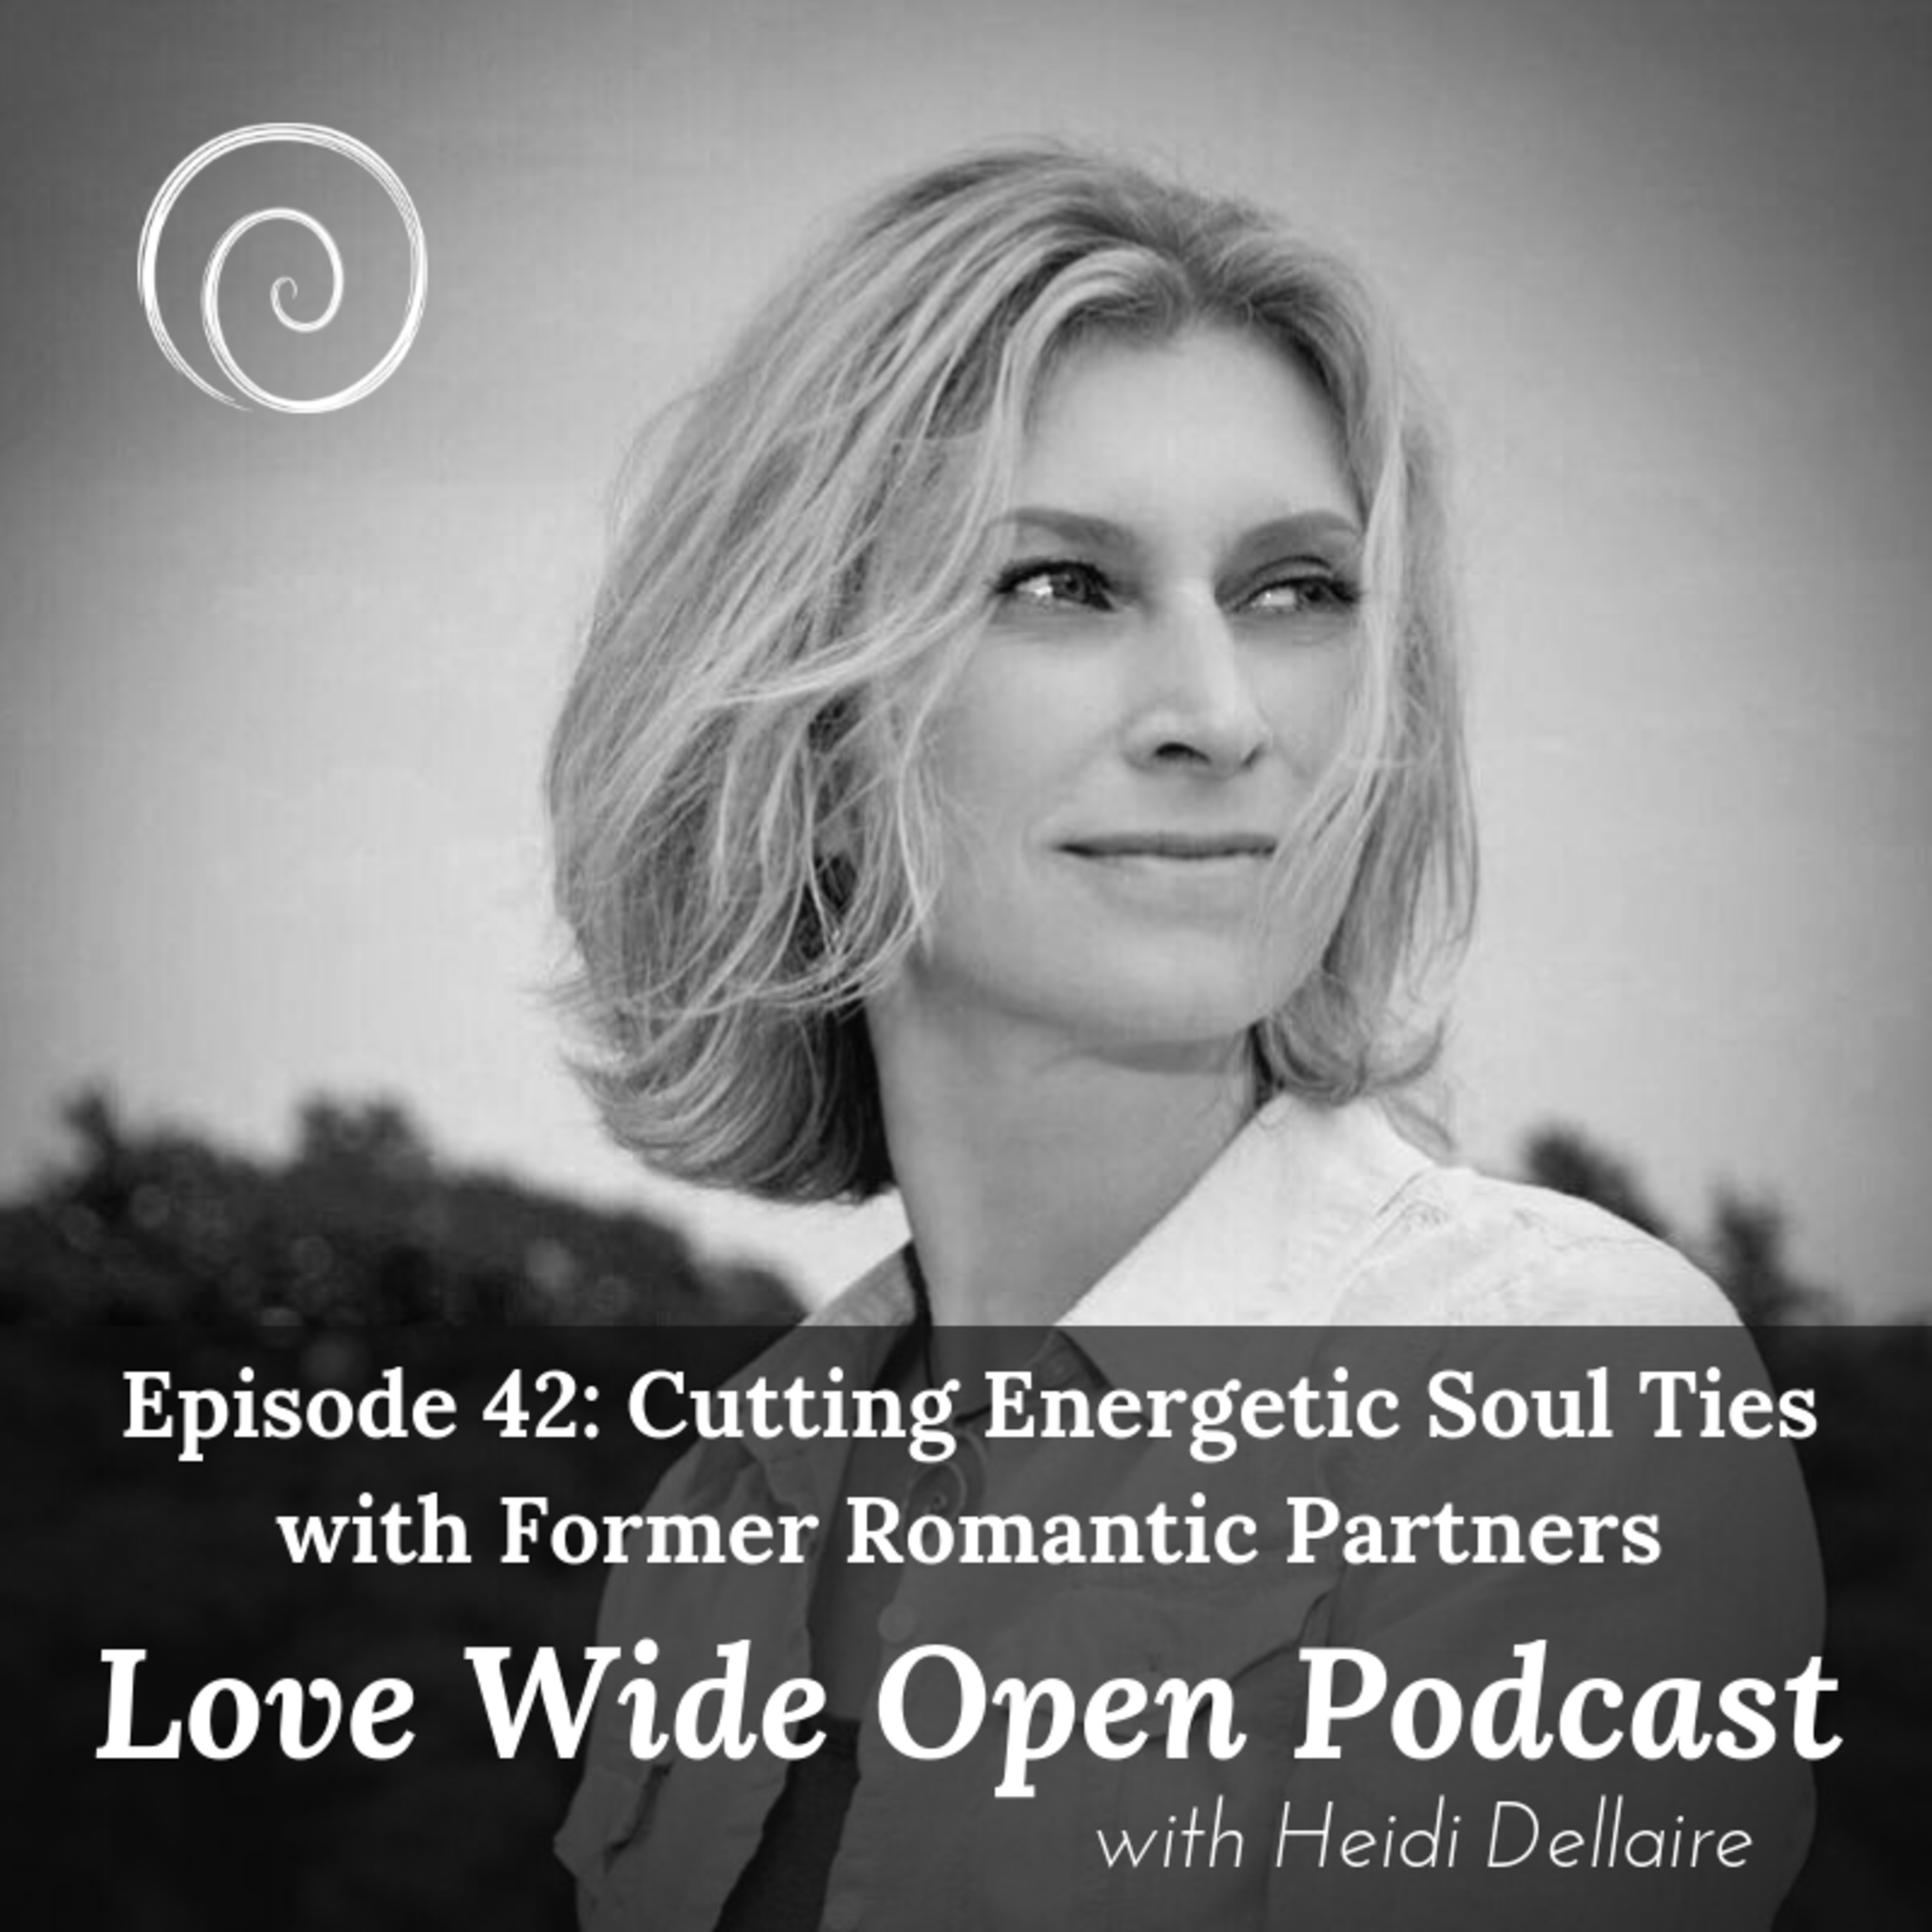 Ep 42 Cutting Energetic Soul Ties with Former Romantic Partners